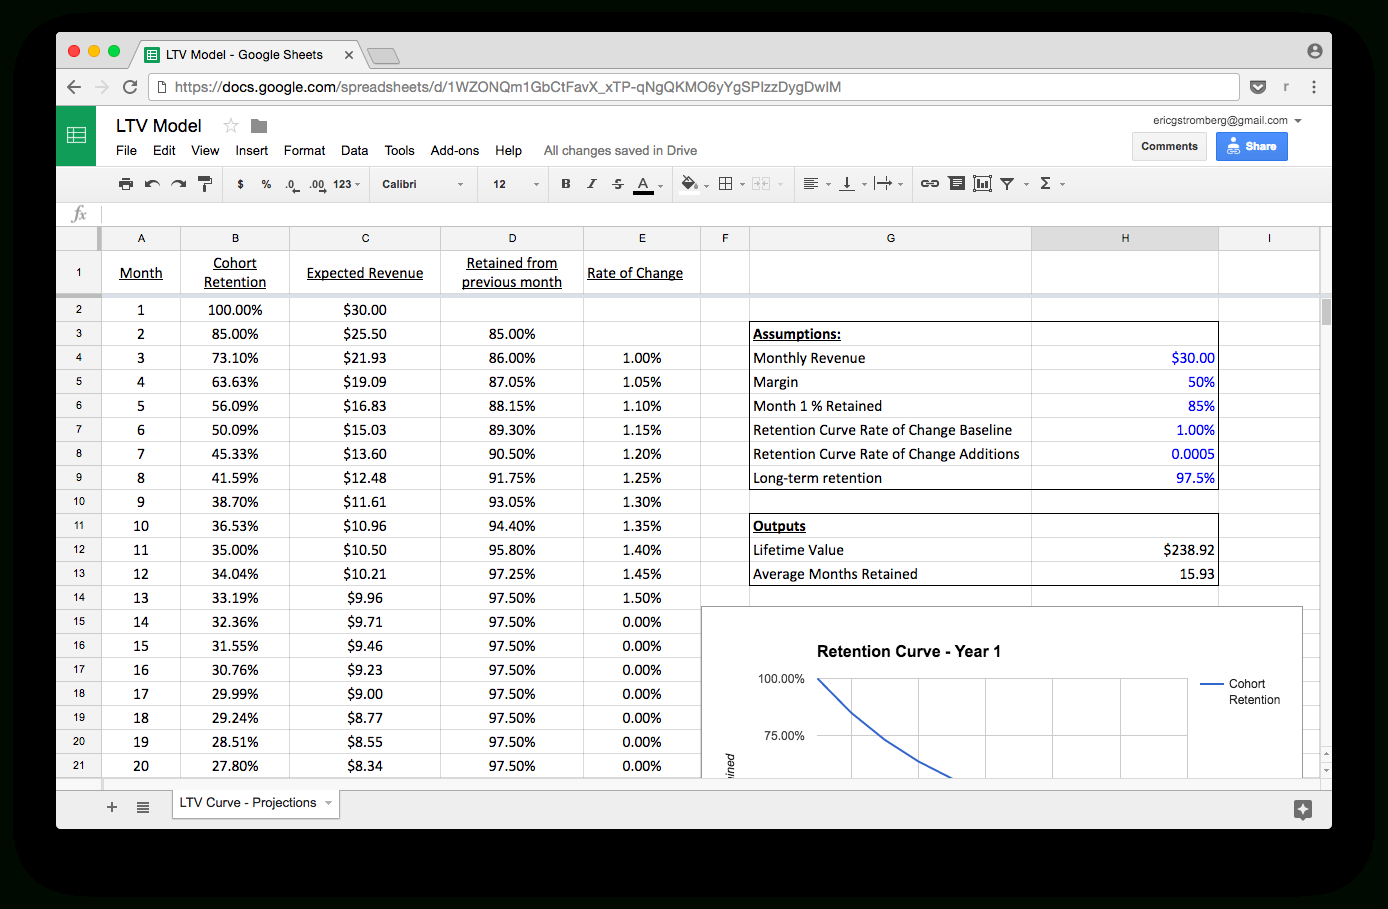 Bid Spreadsheet For A Spreadsheet For Calculating Subscription Lifetime Value